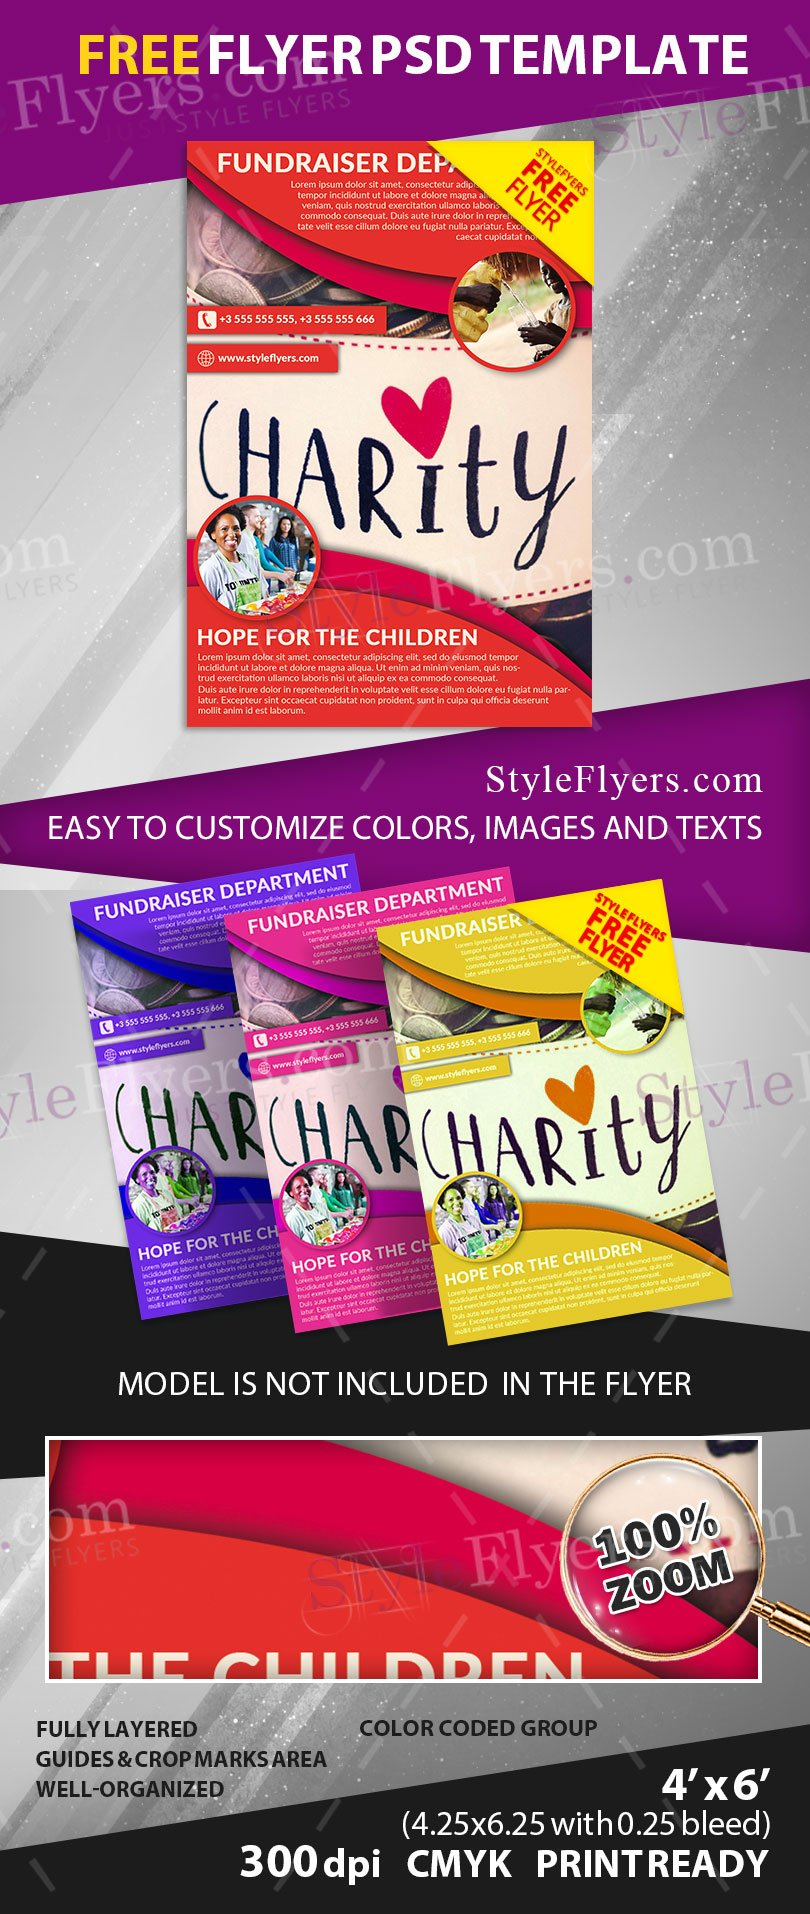 fundraiser free psd flyer template free download 11693 styleflyers